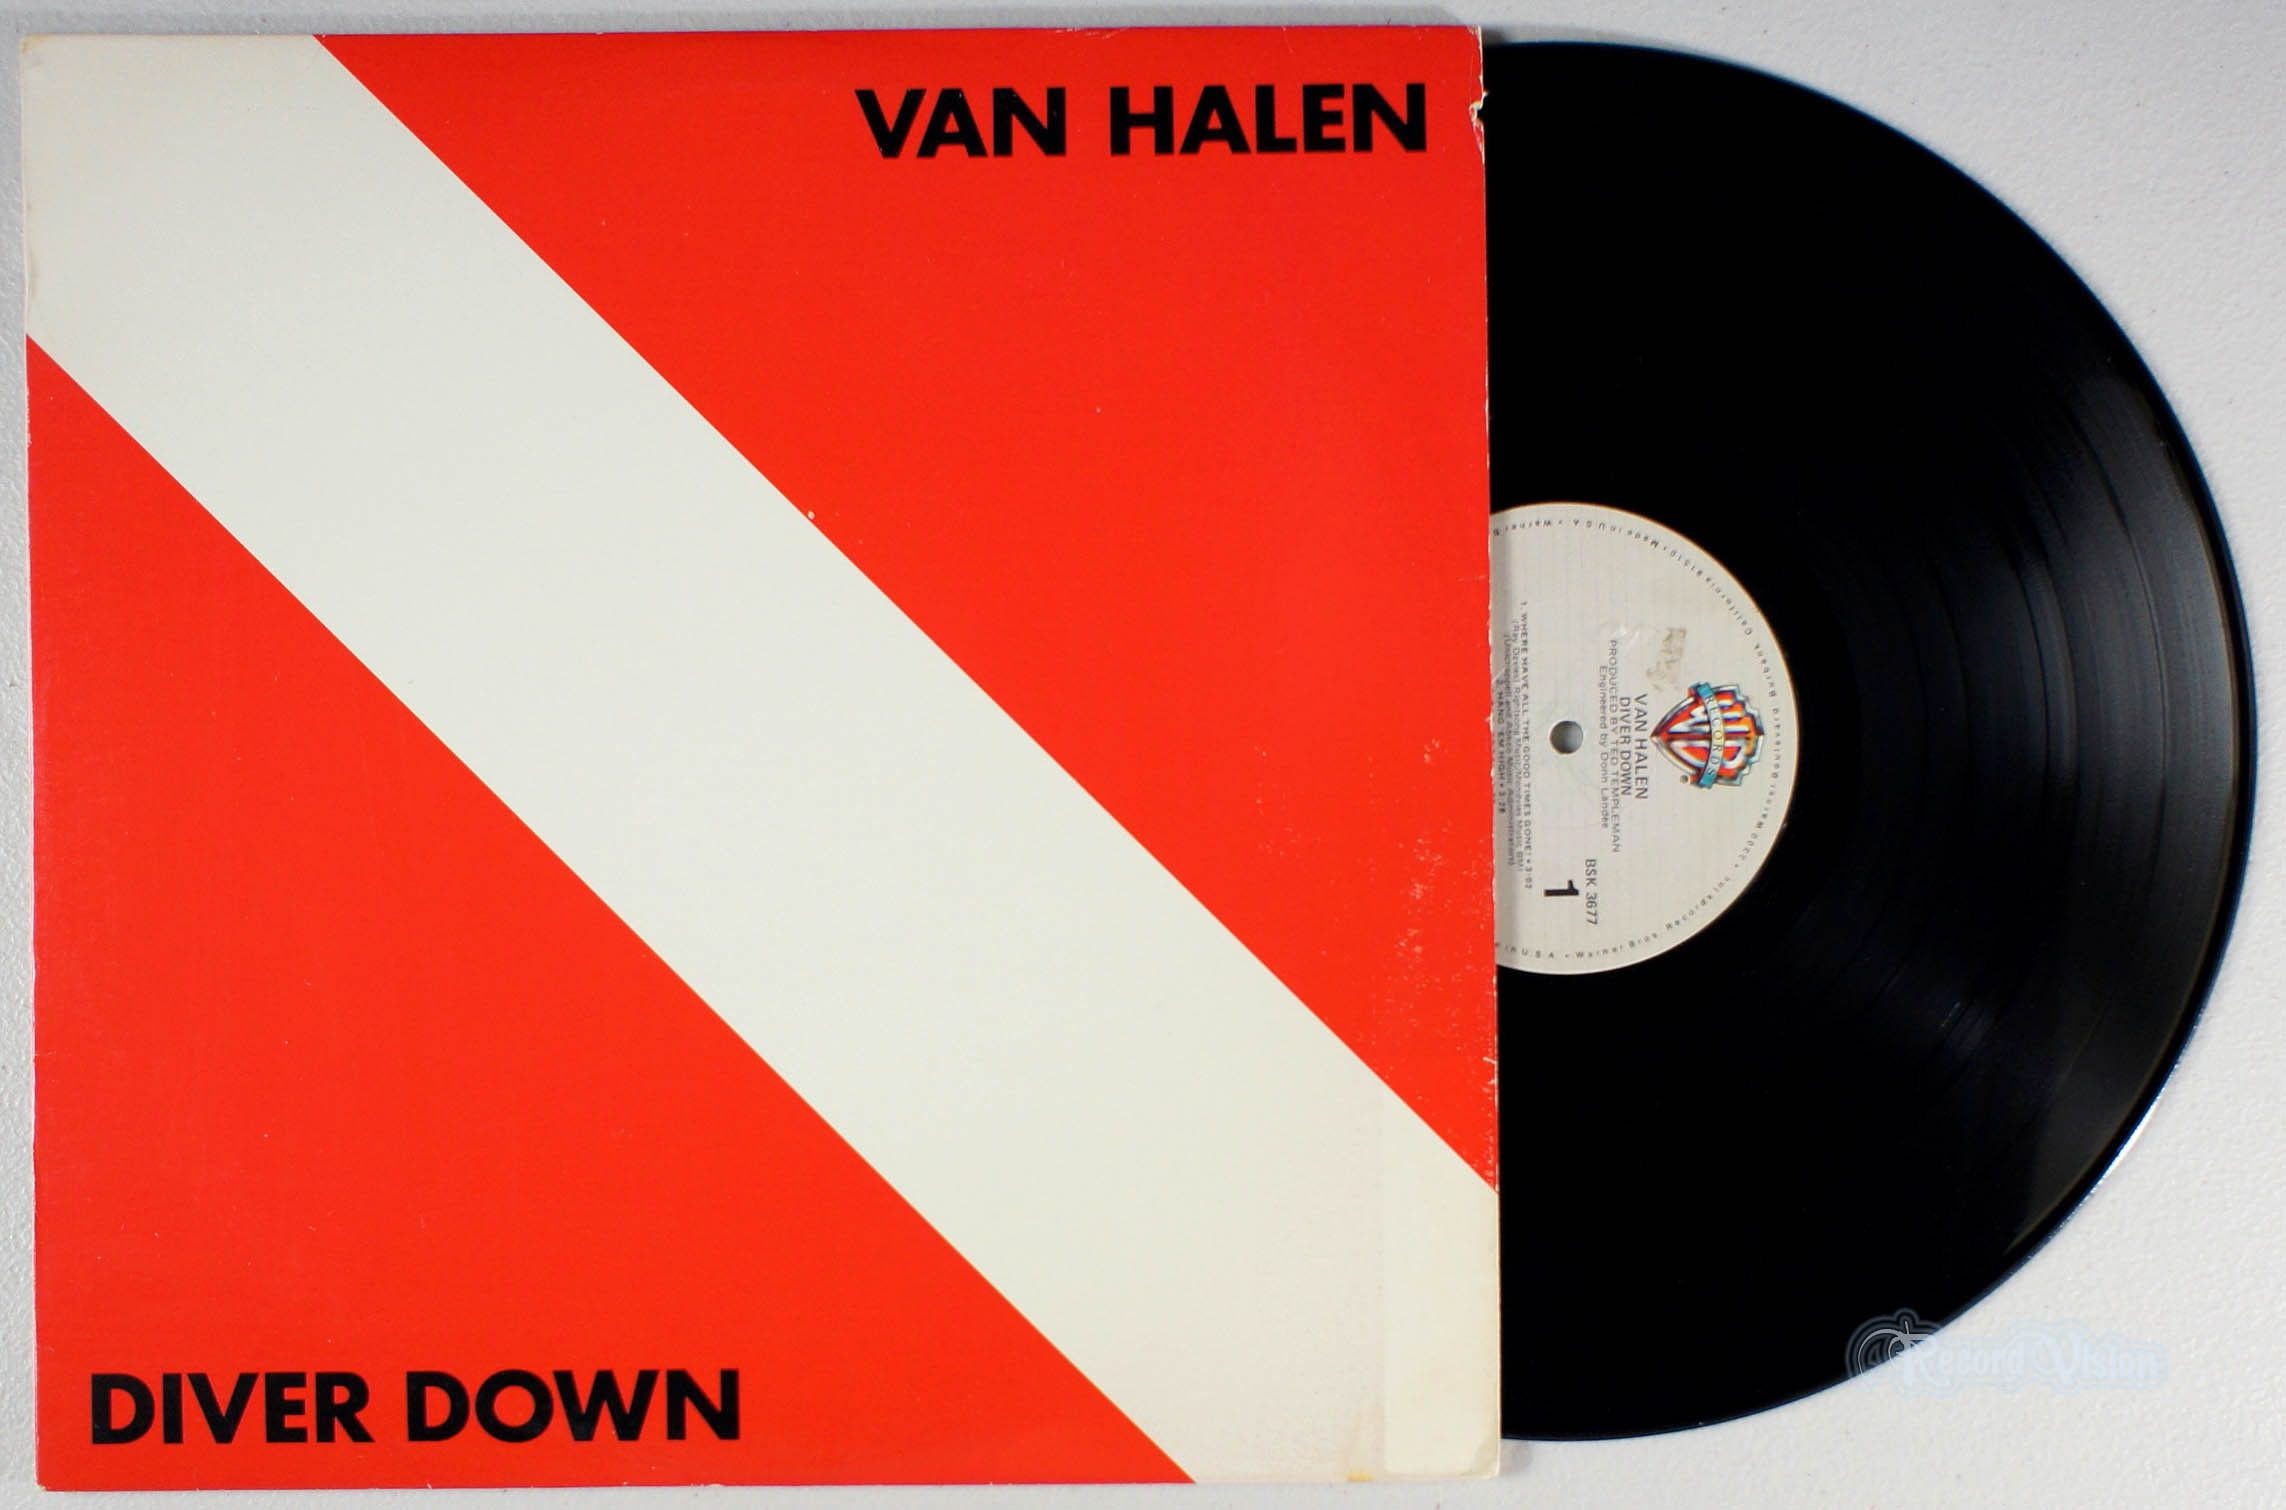 The Album Artwork For Diverdown By Vanhalen Displays The Diver Down Flag Used In Many Us Jurisdictions Which Indic Van Halen Vinyl Record Album Diver Down